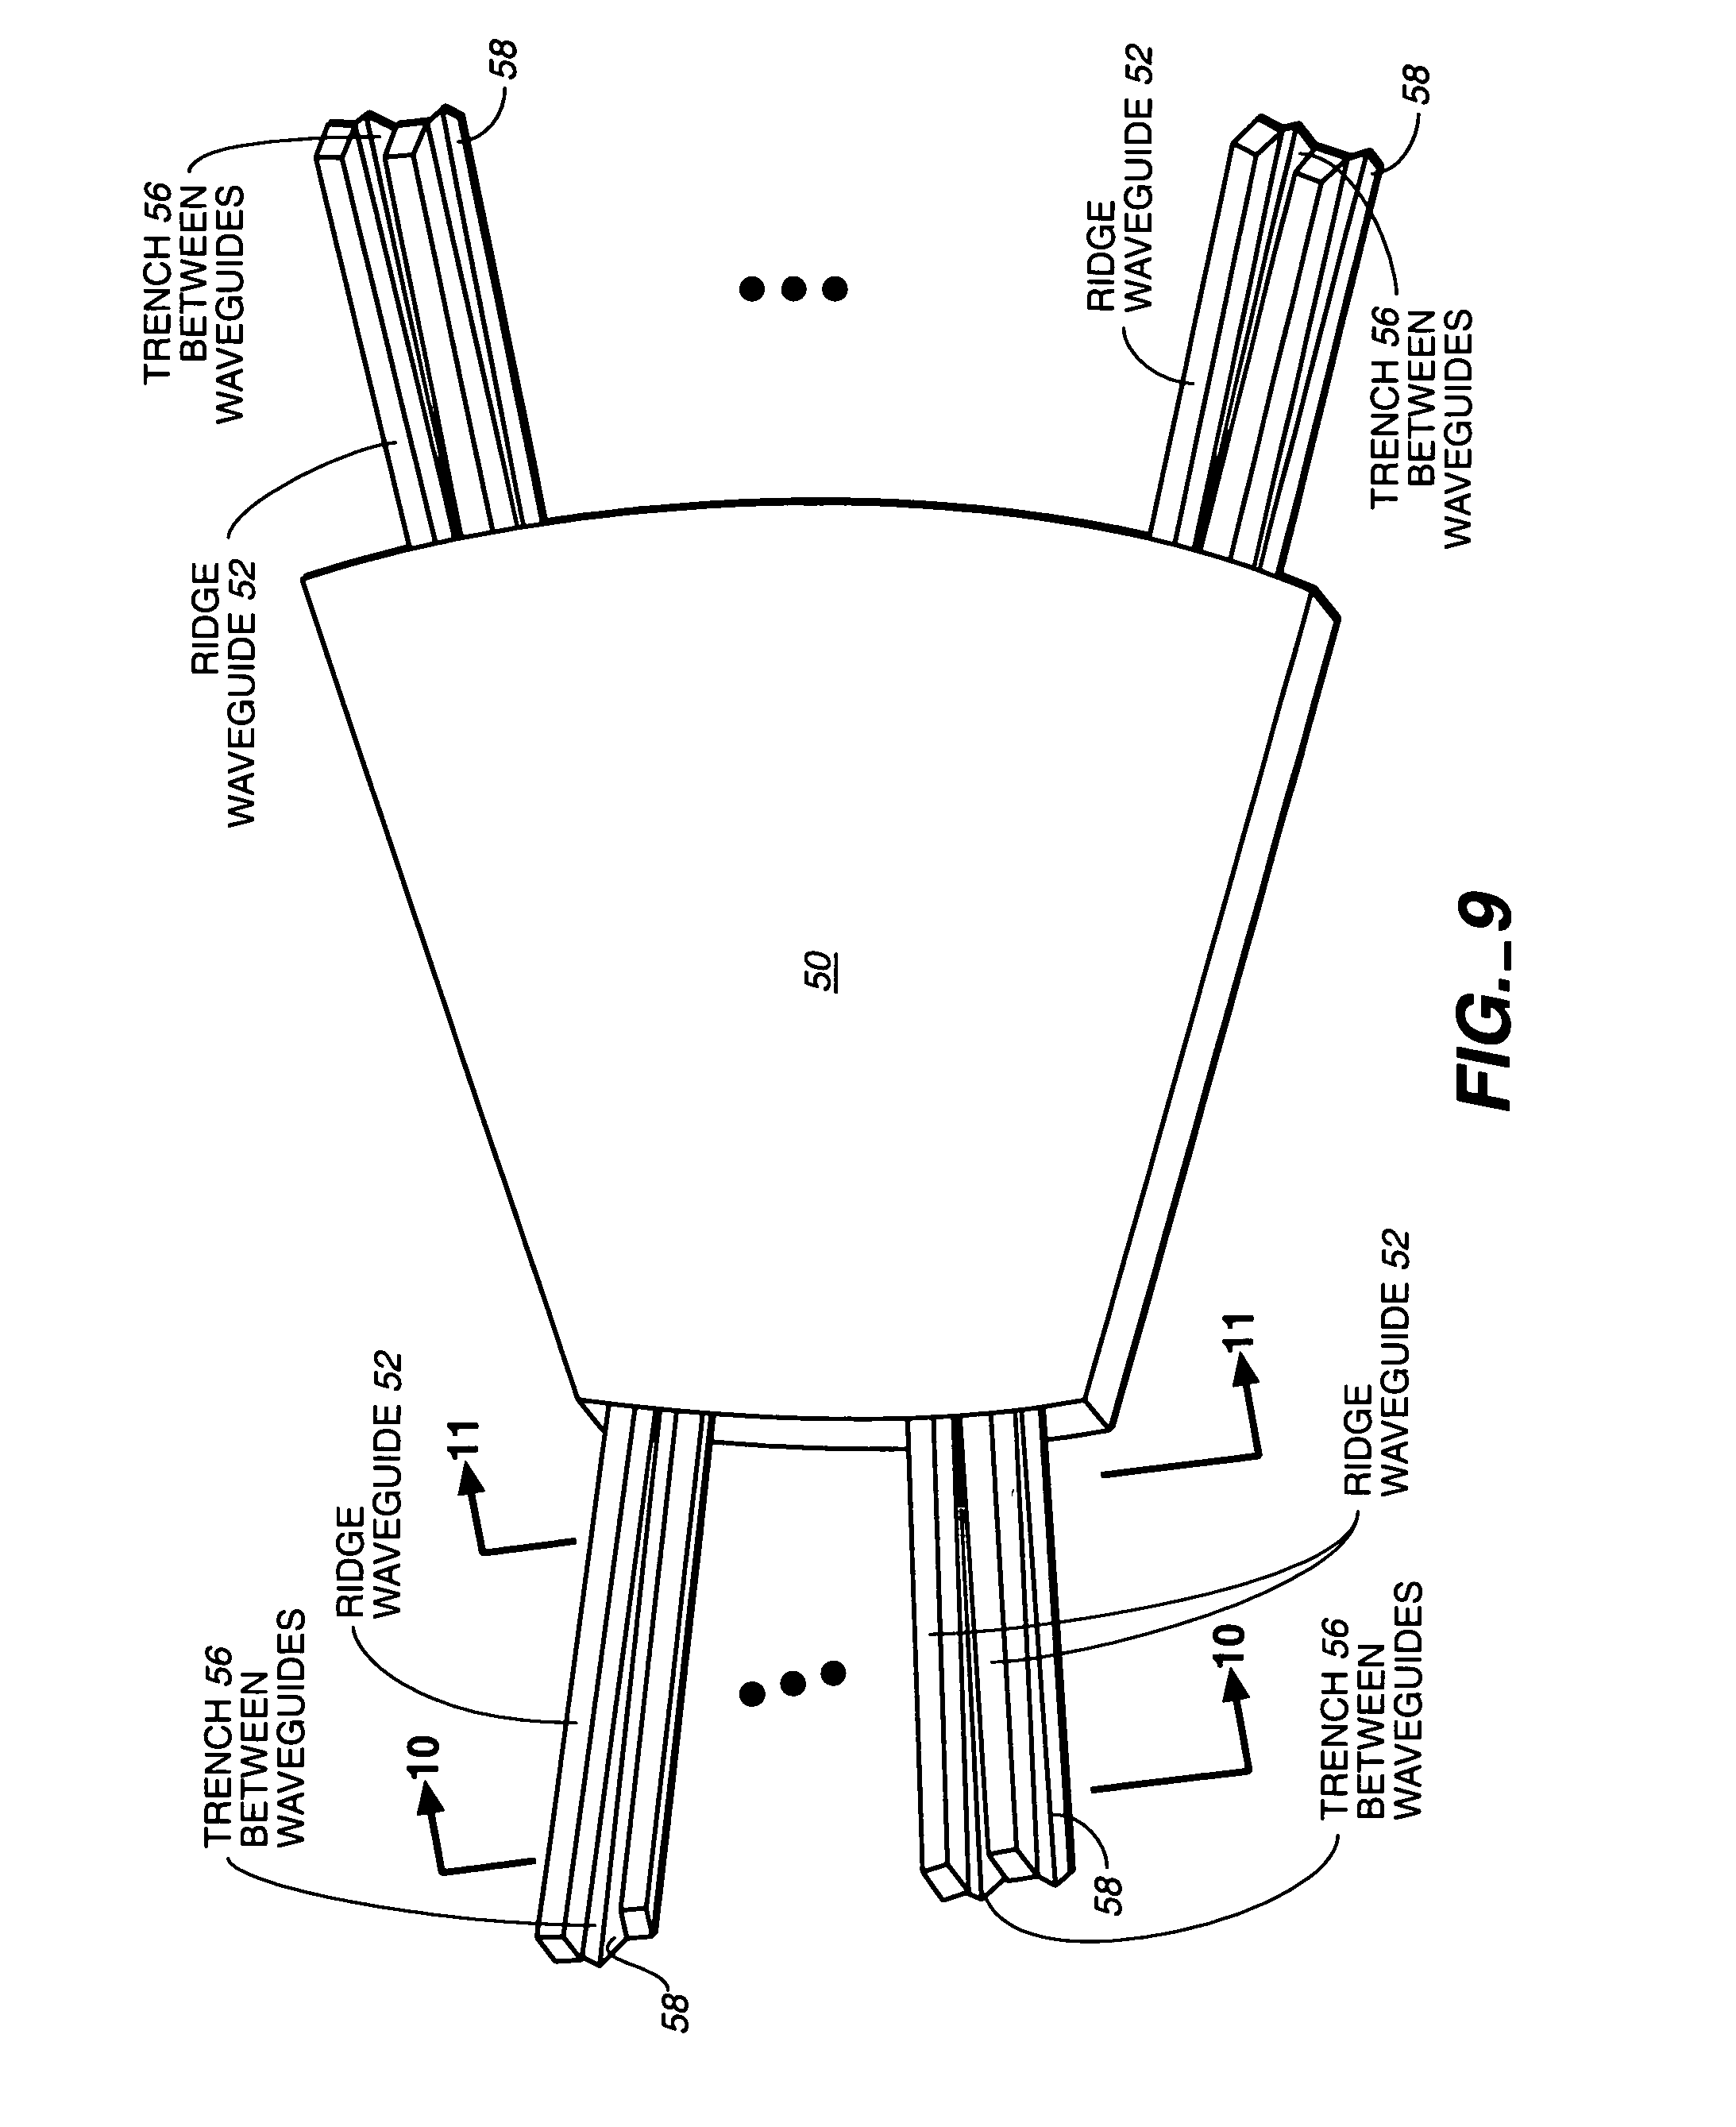 patent us7529436  decombiner with